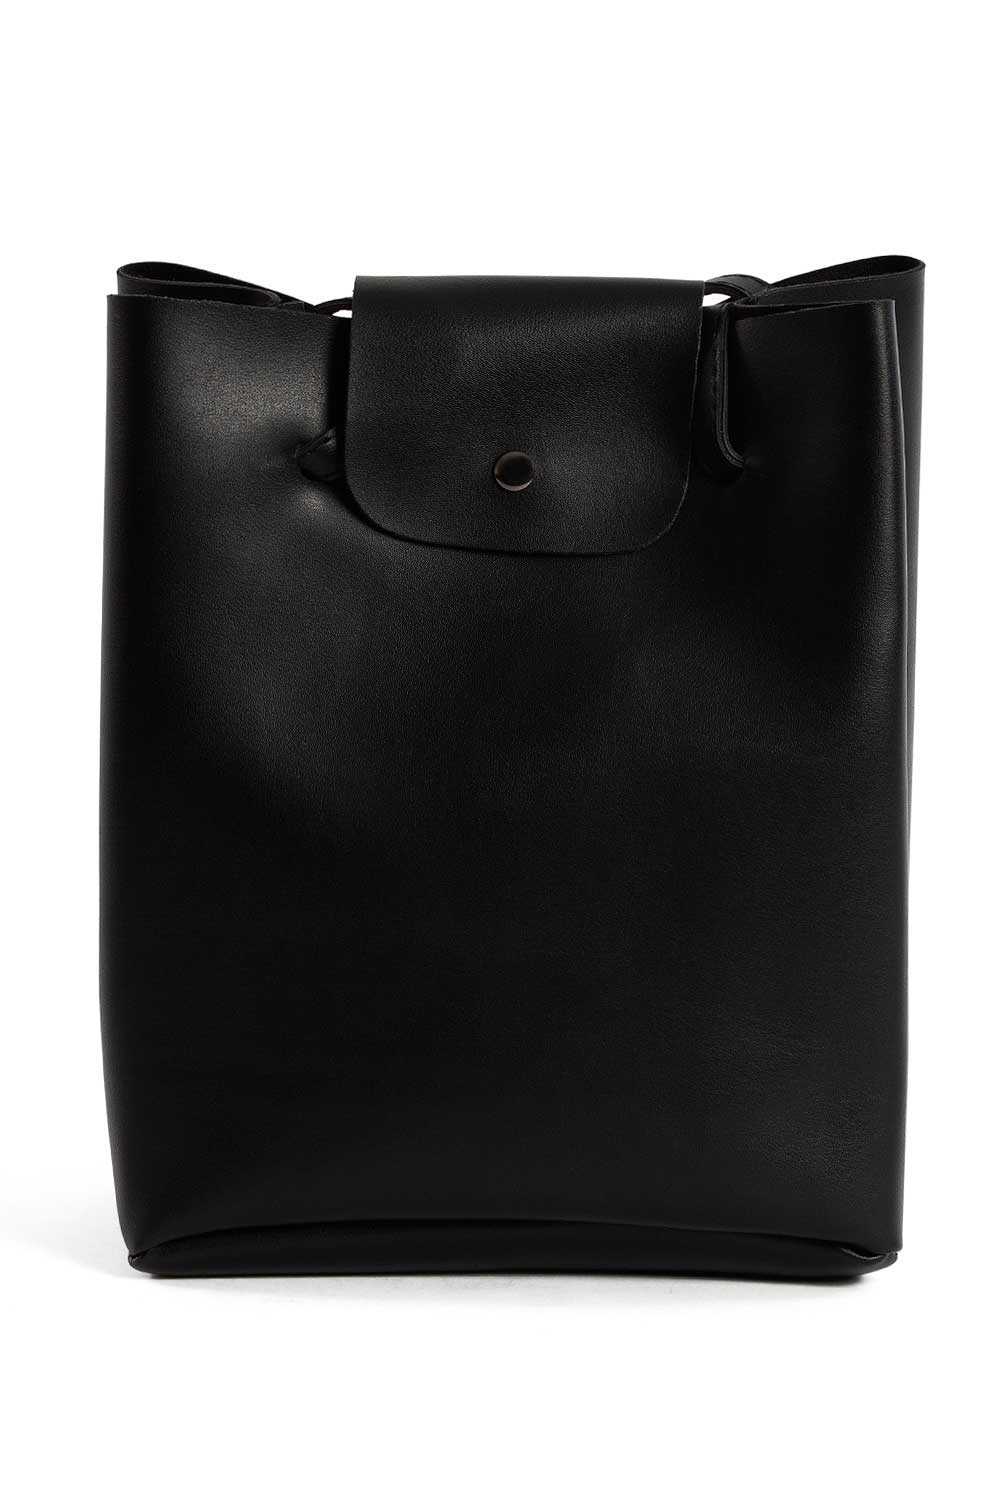 MIZALLE Pompon Detailed Square Shoulder Bag (Black) (1)